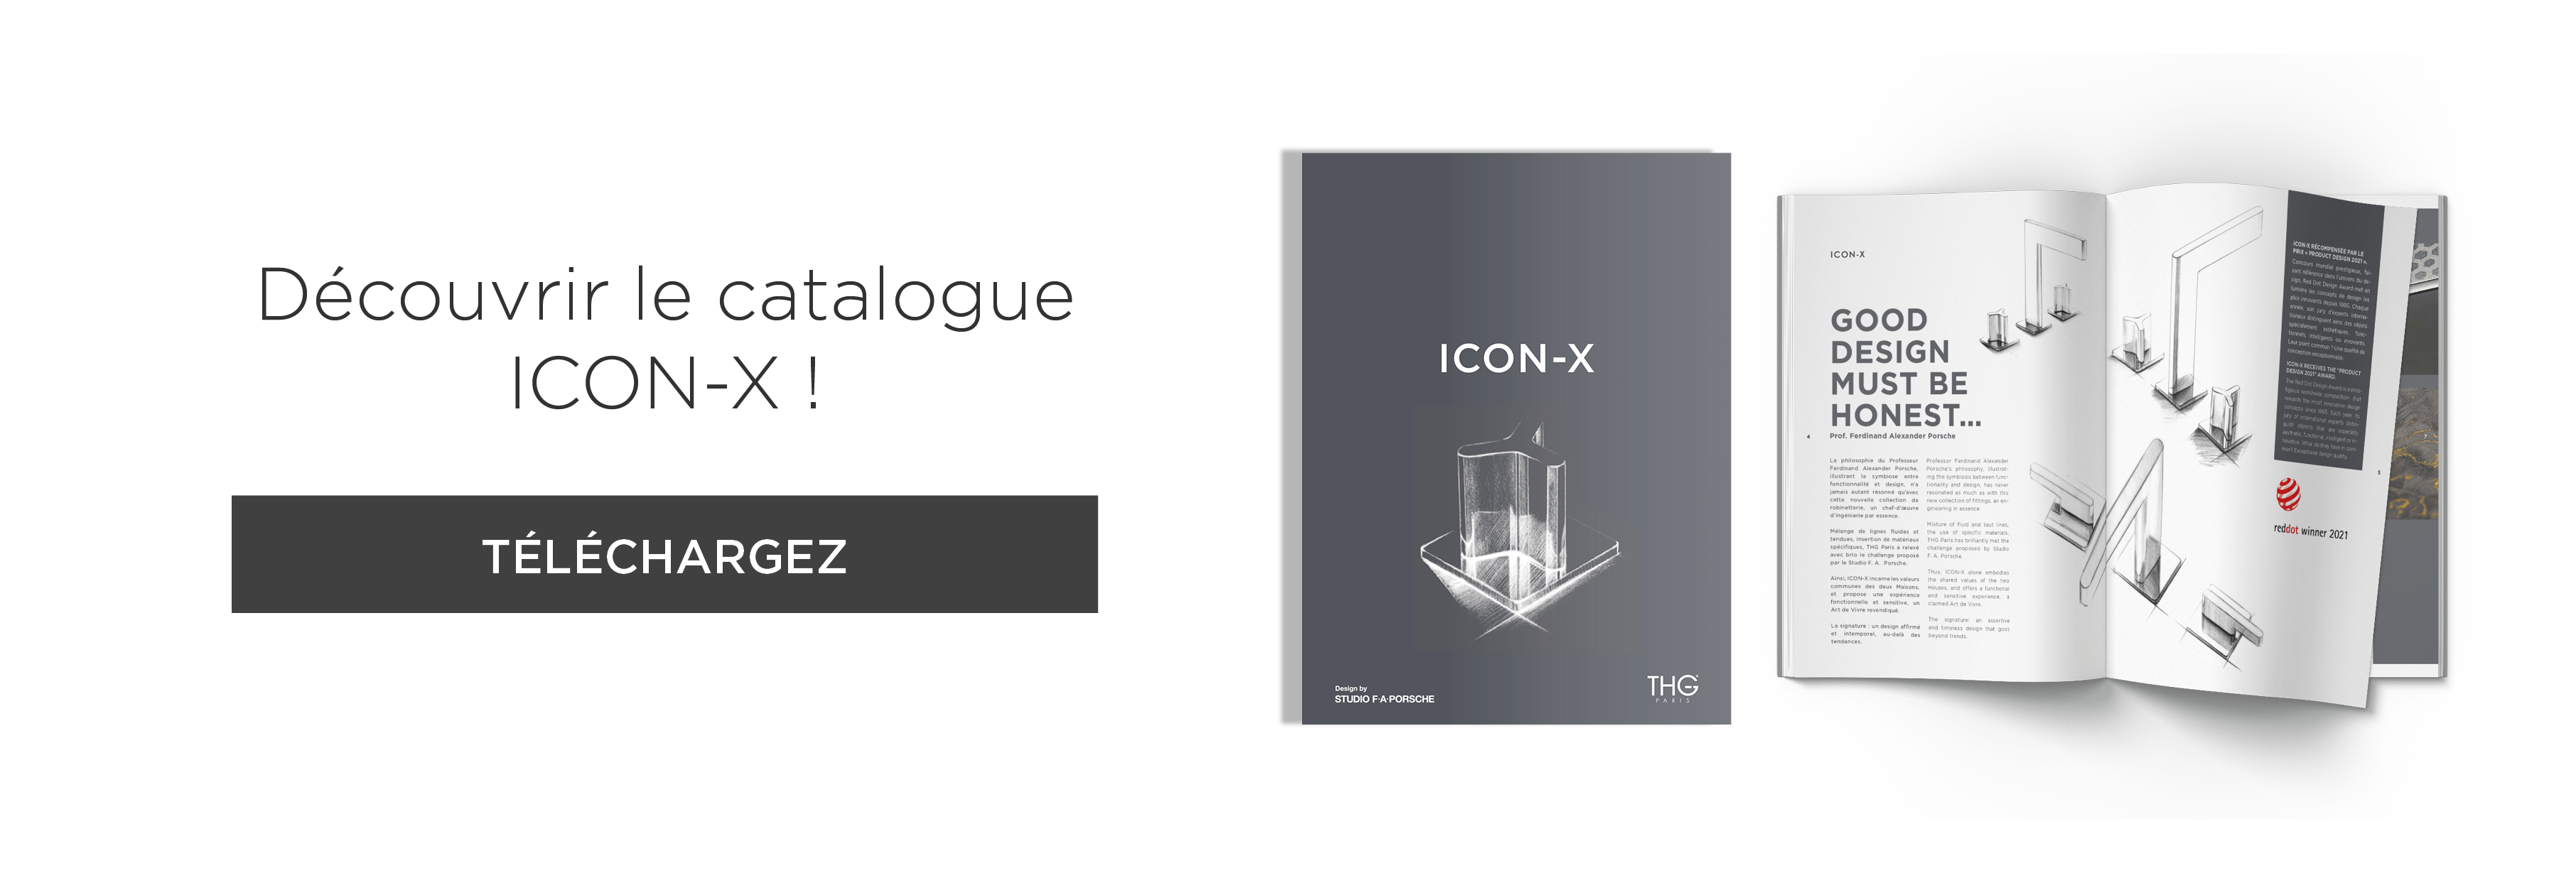 Download our Icon-X catalogue